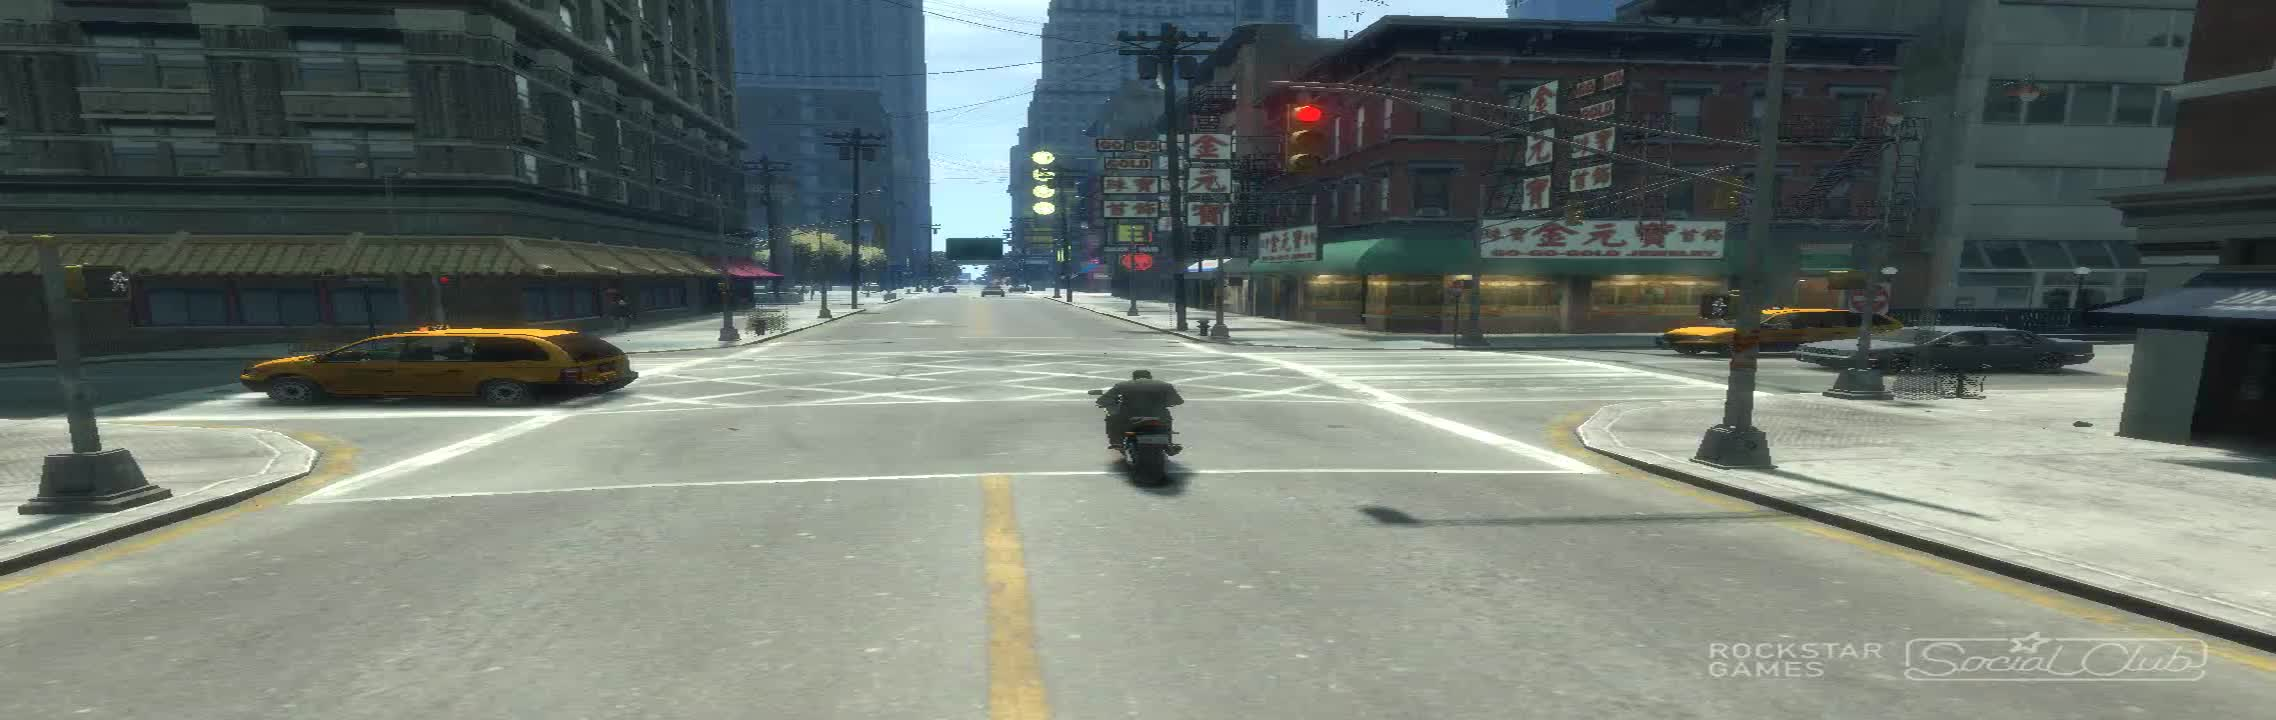 always, auto, four, grand, gta, helmet, lolwat, theft, wear, yt:stretch=16:9, lolwat GIFs